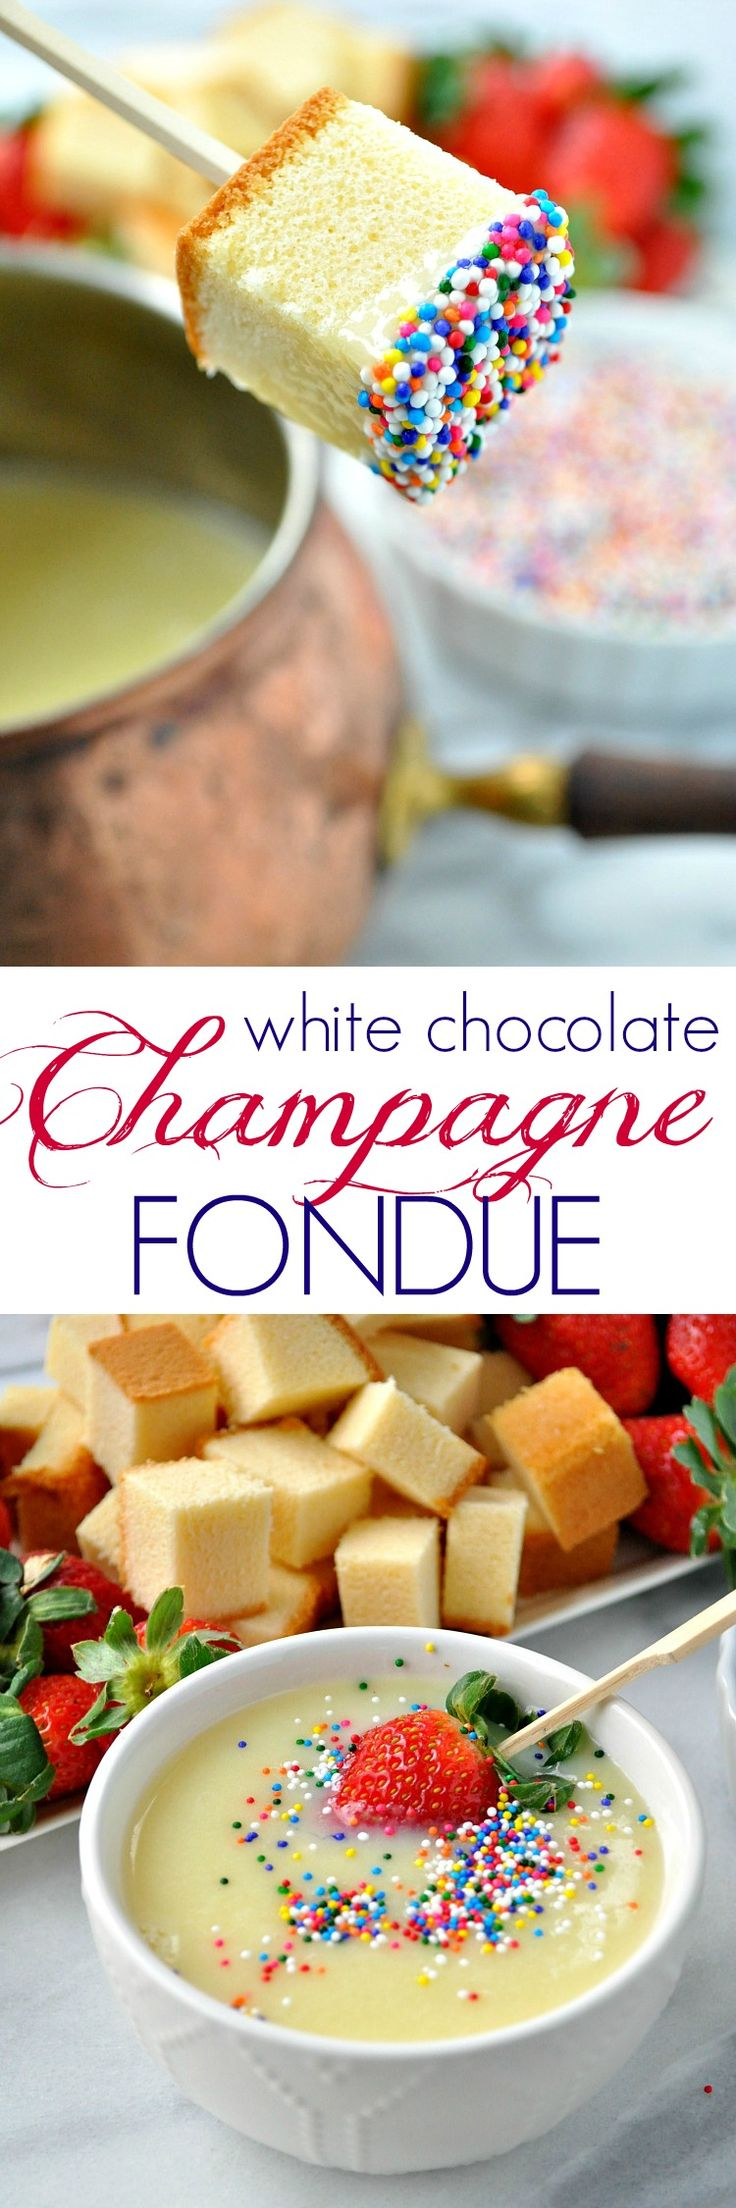 You only need 4 ingredients and about 15 minutes for this decadent White Chocolate Champagne Fondue, which is a perfect dessert for New Year's Eve, Valentine's Day, anniversaries, or any other special occasion!